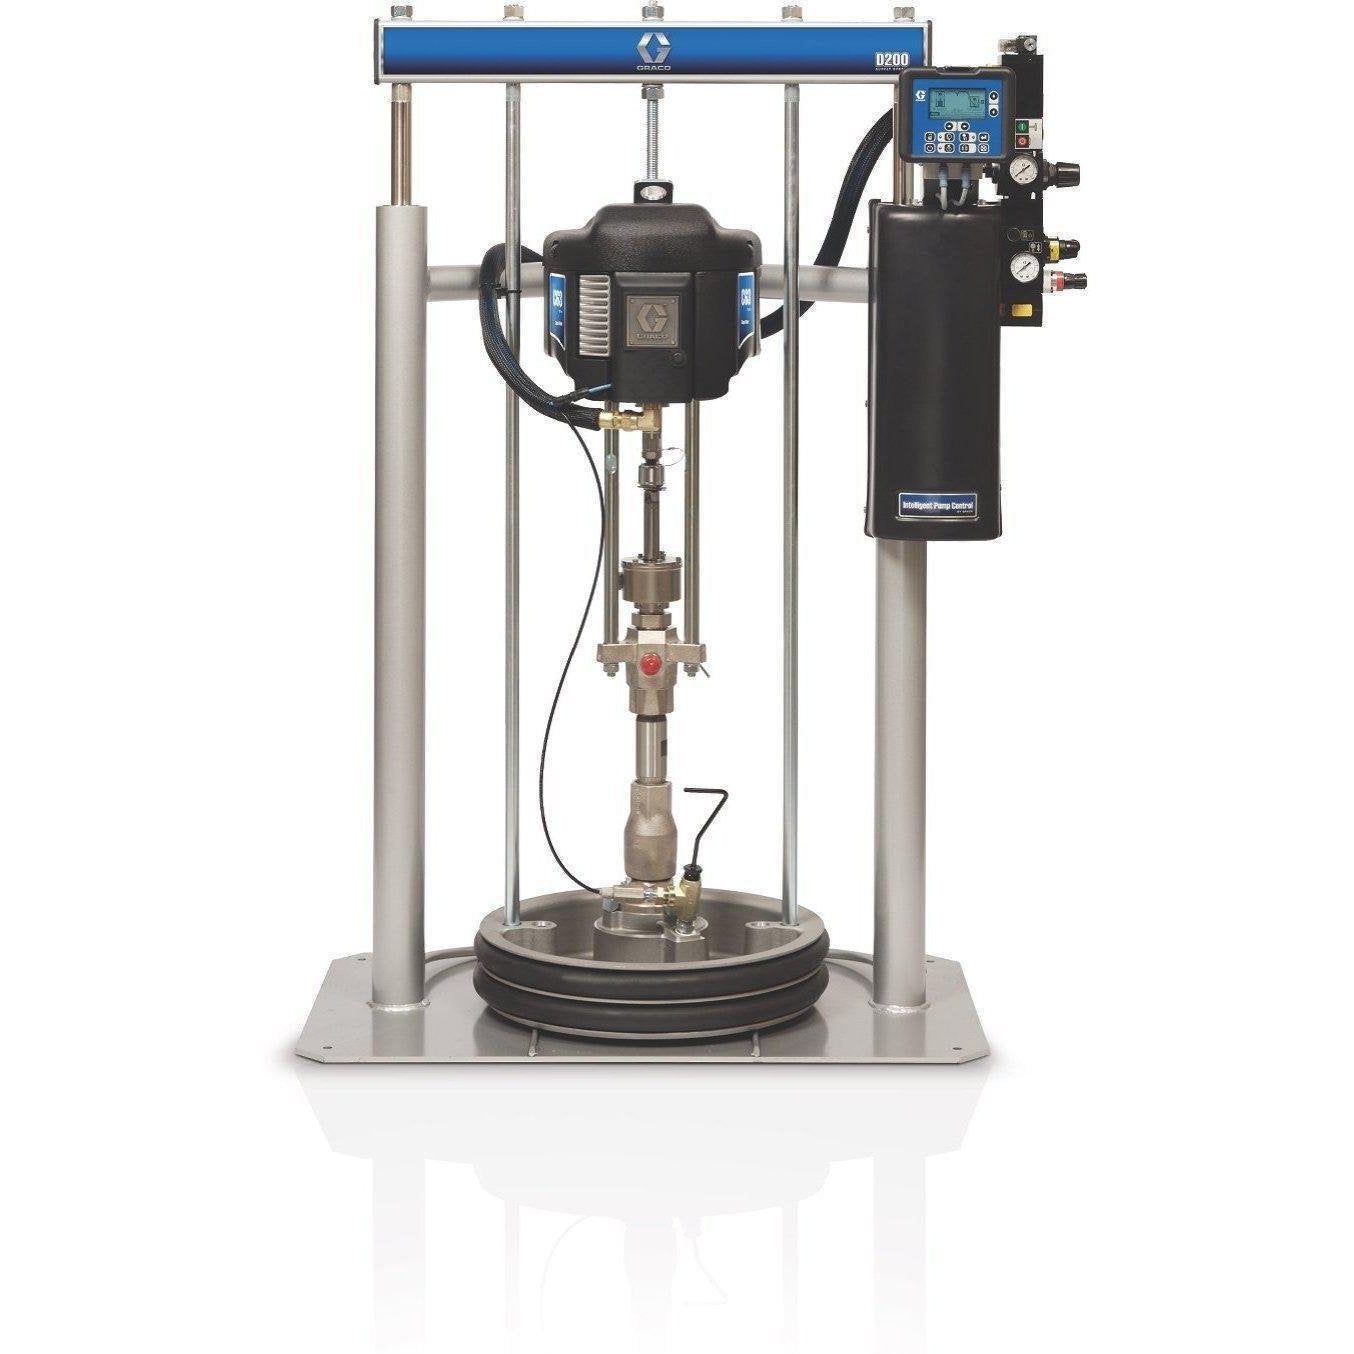 Graco 247980 Nxt™ Check-Mateâ® 63:1 Ram Grease Pump Package With Datatrak - Fireball Equipment Ltd.